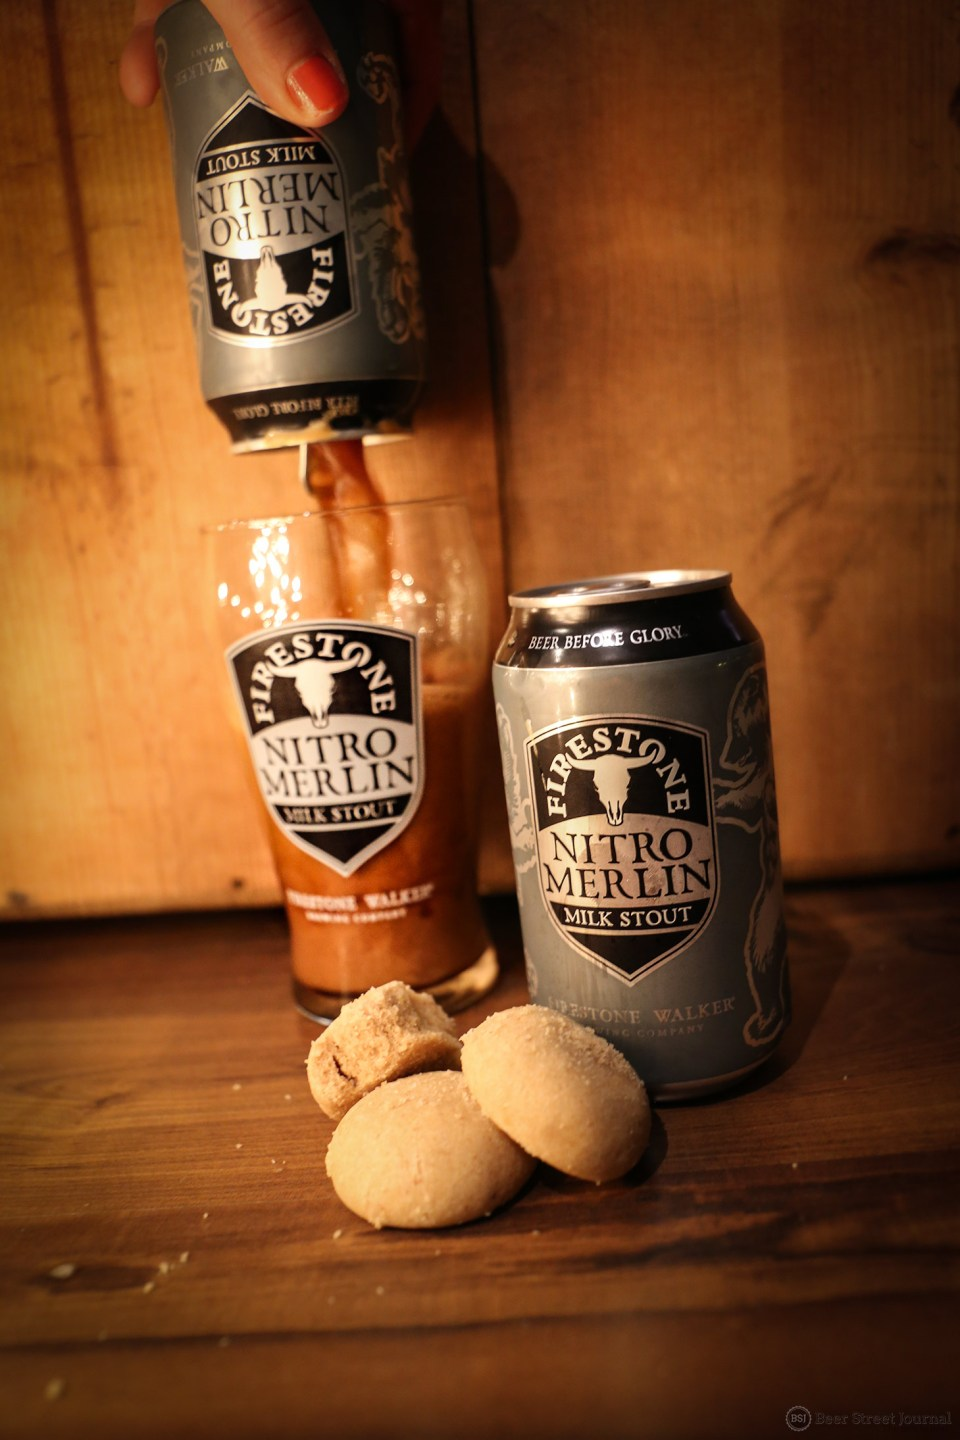 Firestone Walker Nitro Merlin Milk Stout can